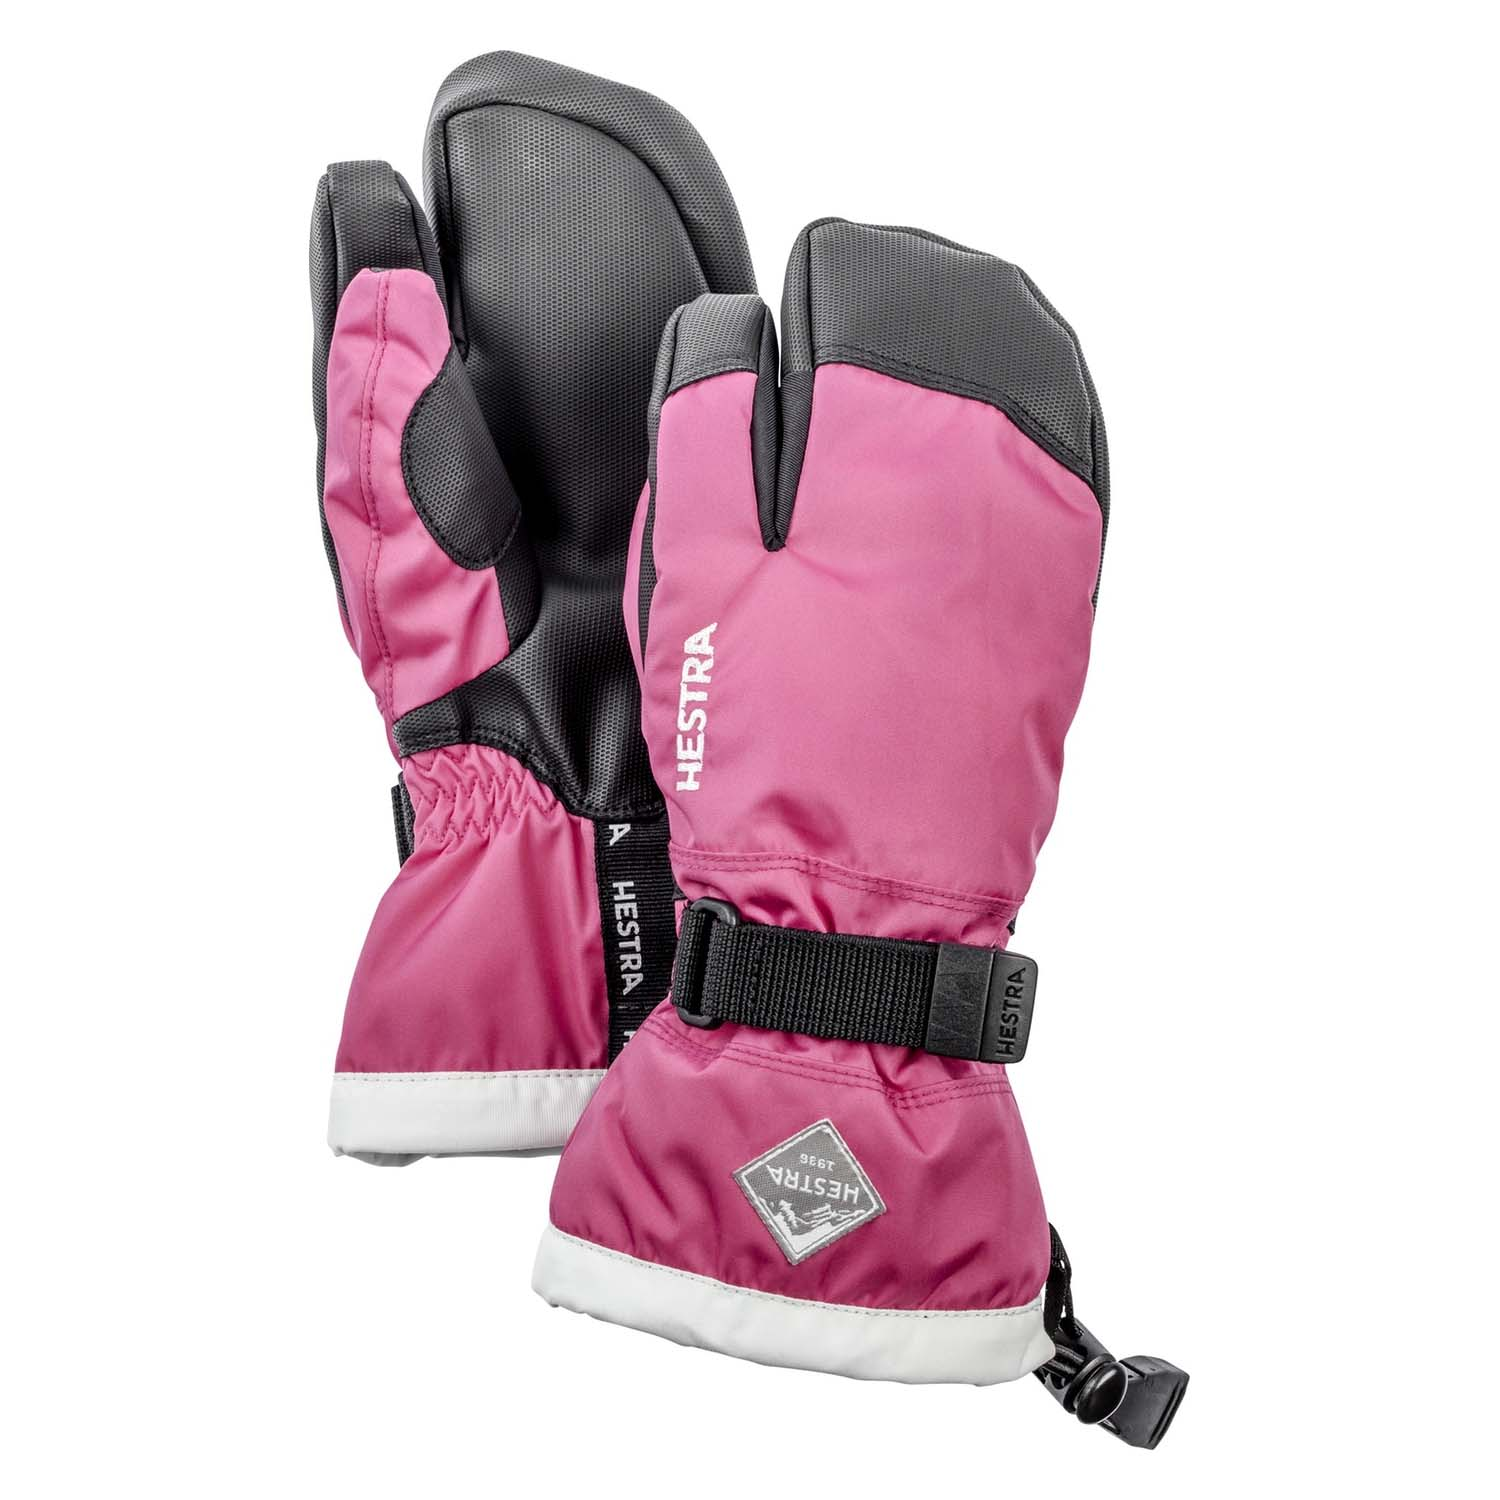 Hestra Gauntlet Czone Junior 3-Finger Glove Fuchsia 2020